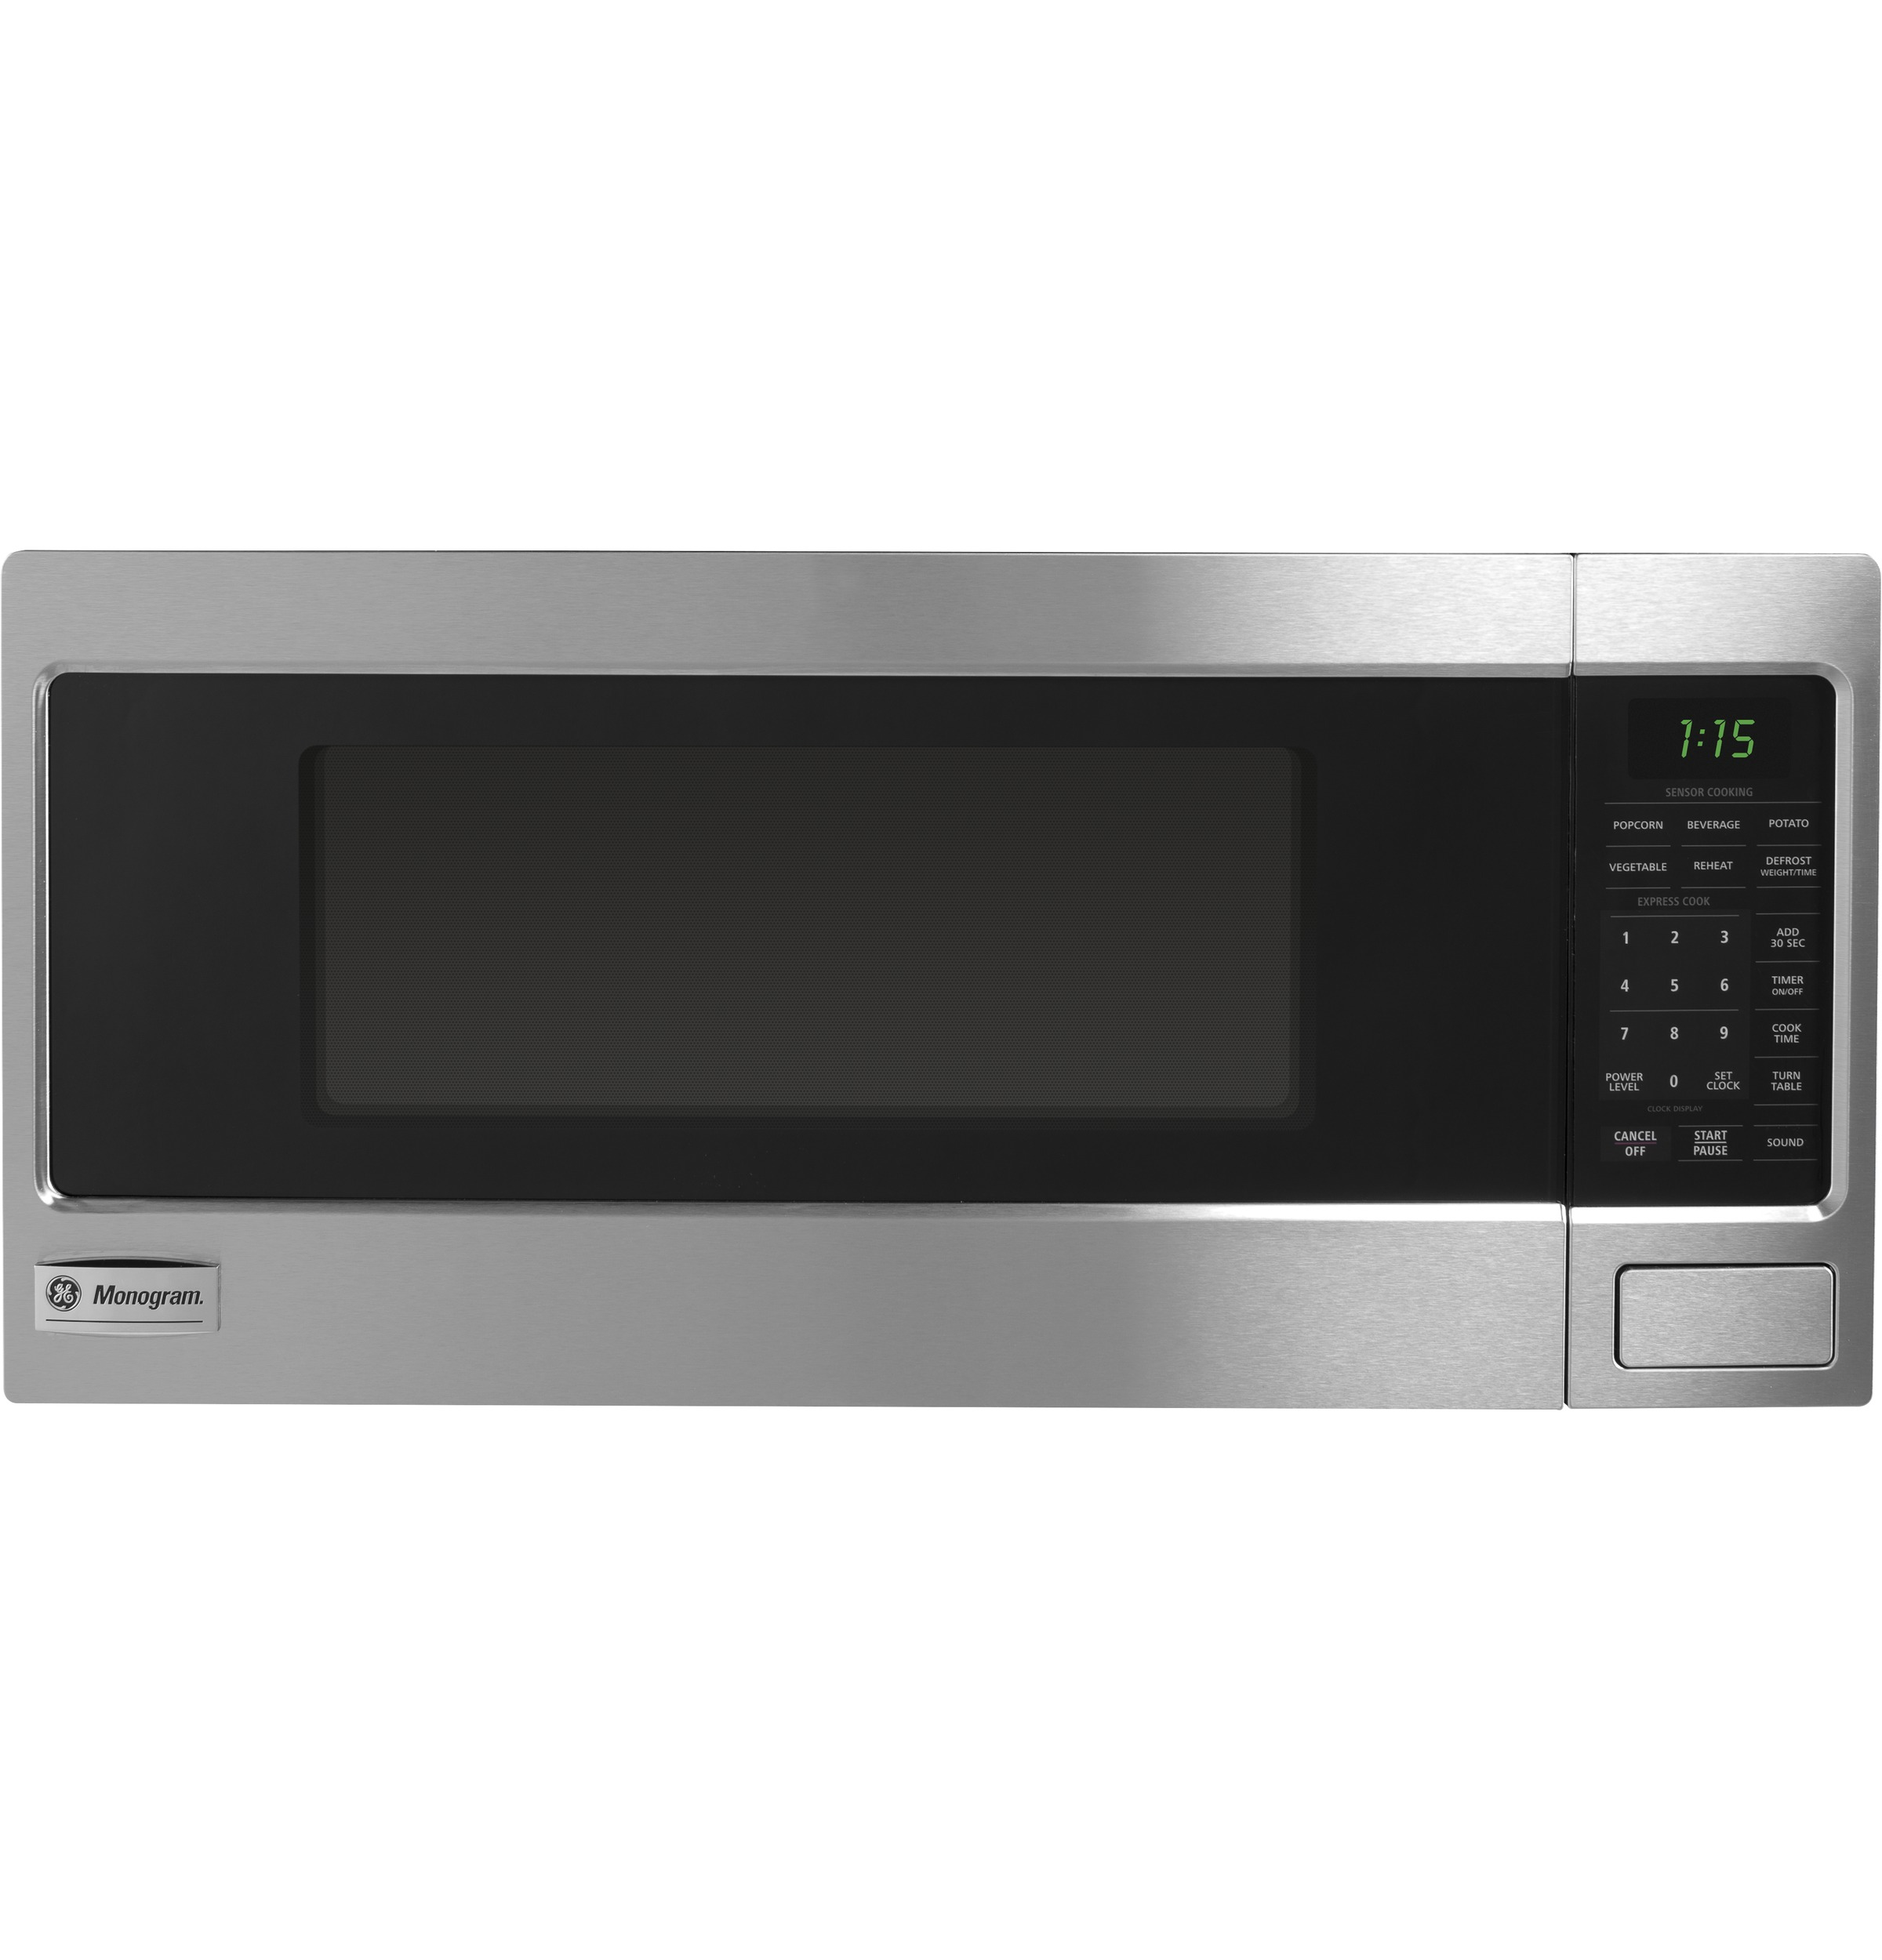 ZEM115SFSS - Monogram? 1.1 Cu. Ft. Countertop Microwave Oven - The ...